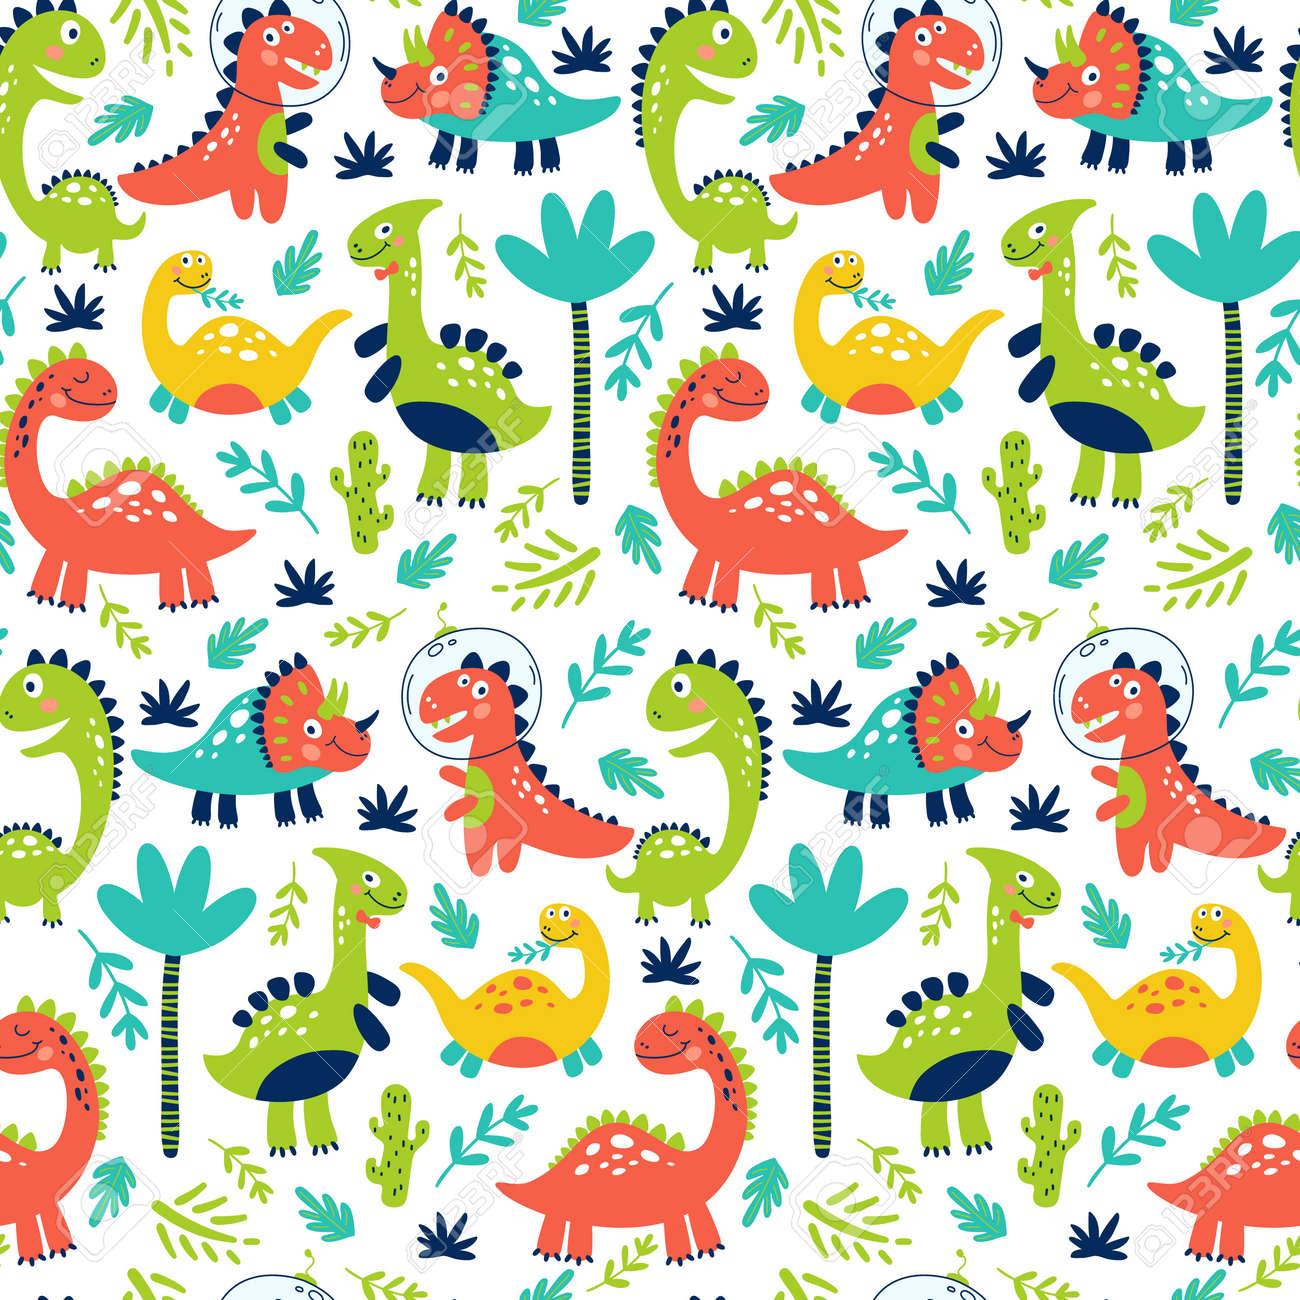 Seamless pattern with cute dinosaurs for children print. Vector illustration - 124921500